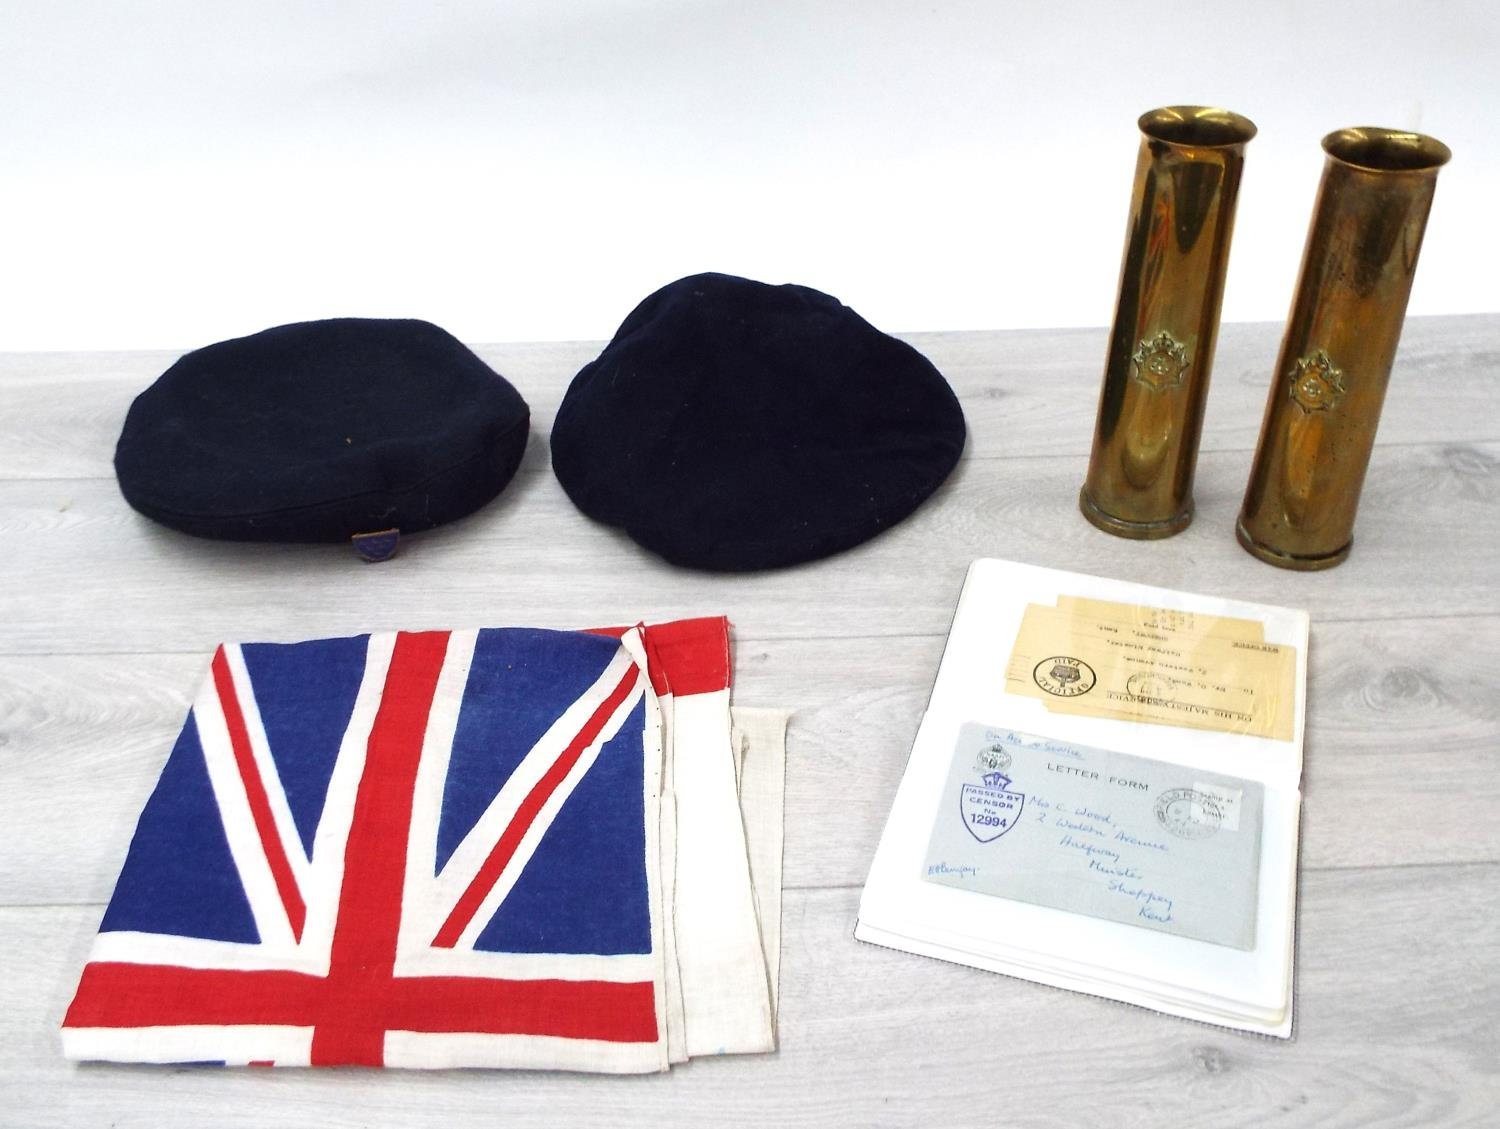 """Pairof brass gun shell 'trench art' vases, 8.5"""" high; Union Flag, two Naval berets, one applied"""